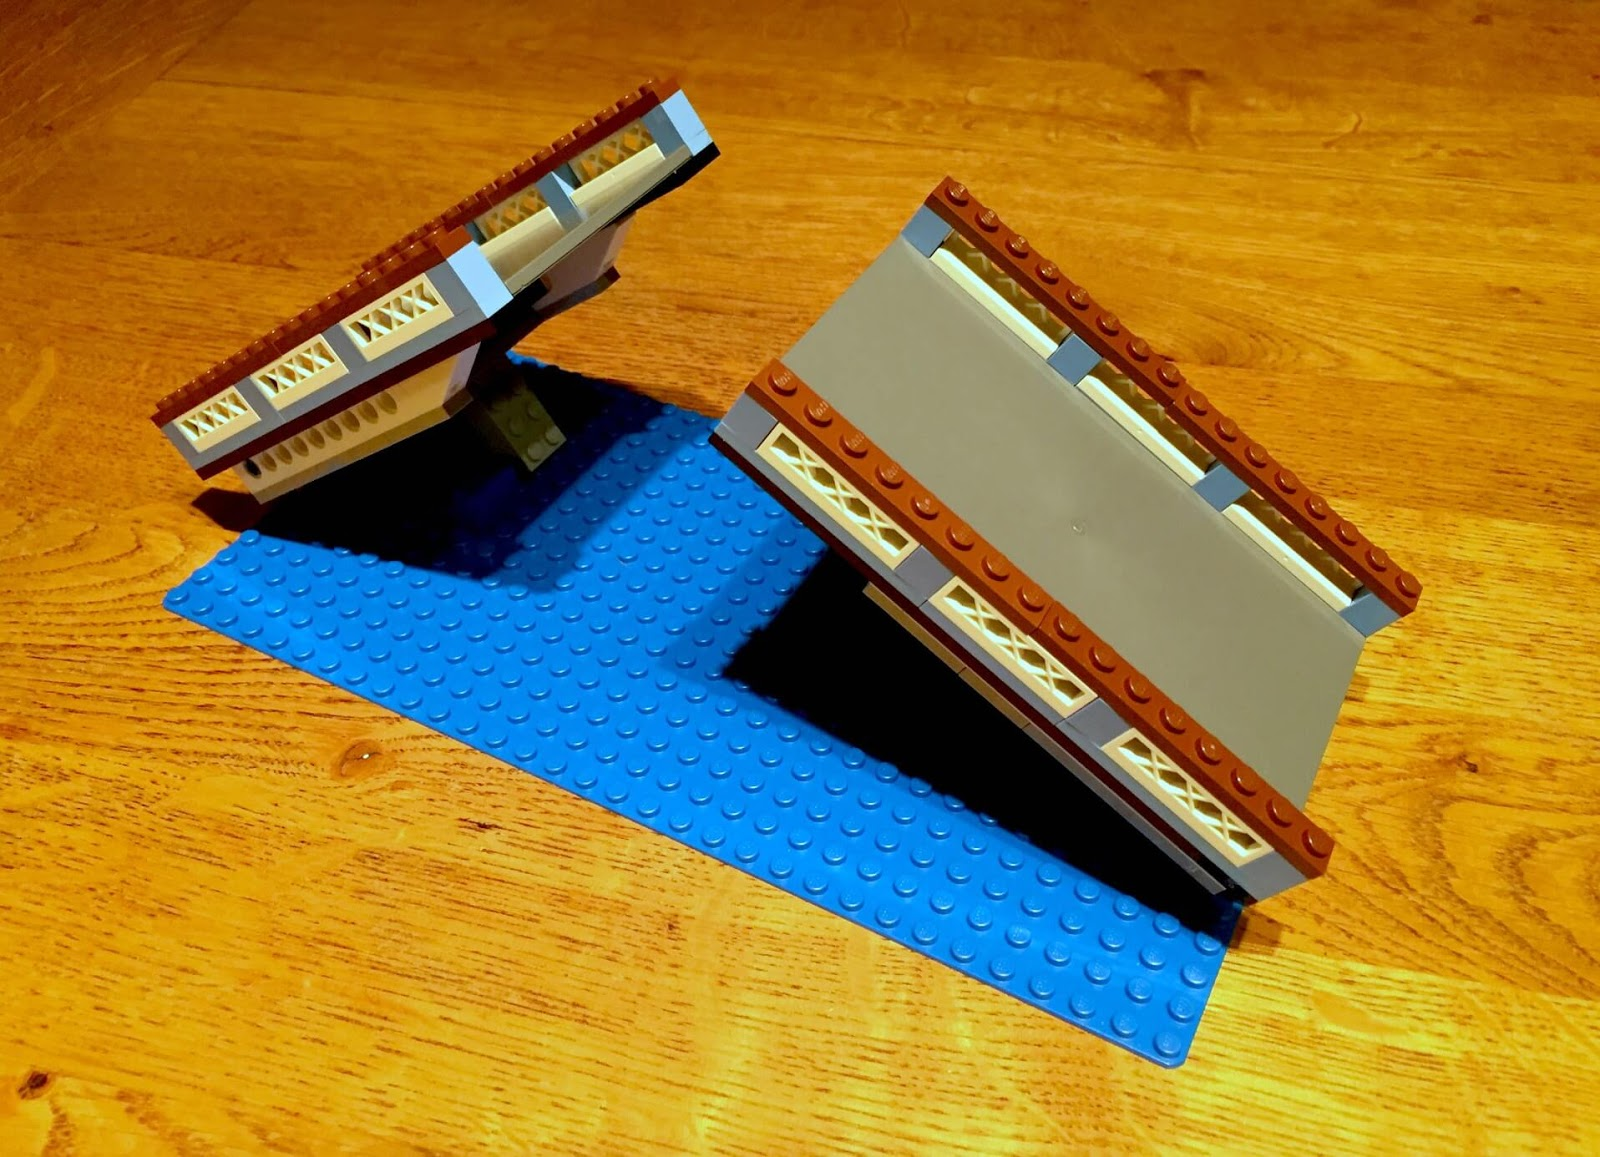 Building Lego Tower Bridge 10214 | Making a start on the build.